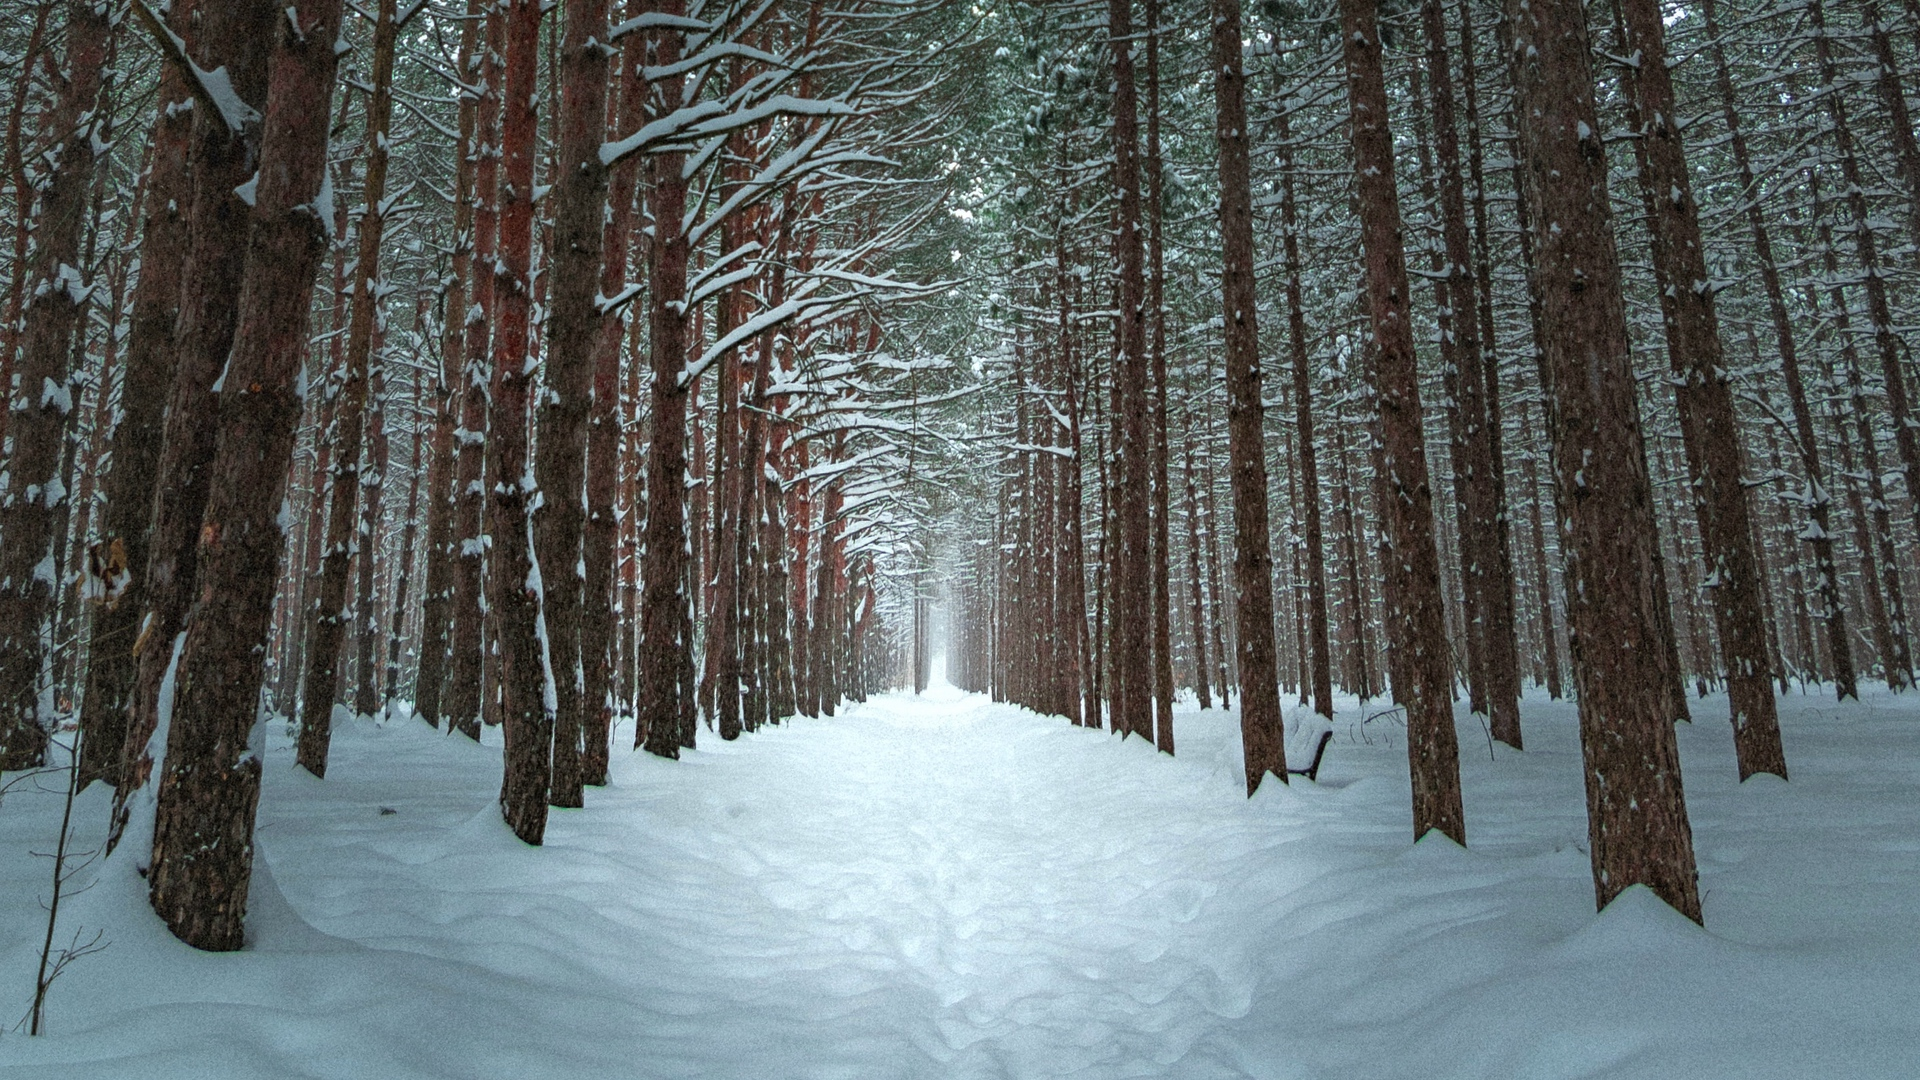 Wallpaper Winter, Forest, Trail, Snow, Trees - 1080p Winter Forest Background - HD Wallpaper